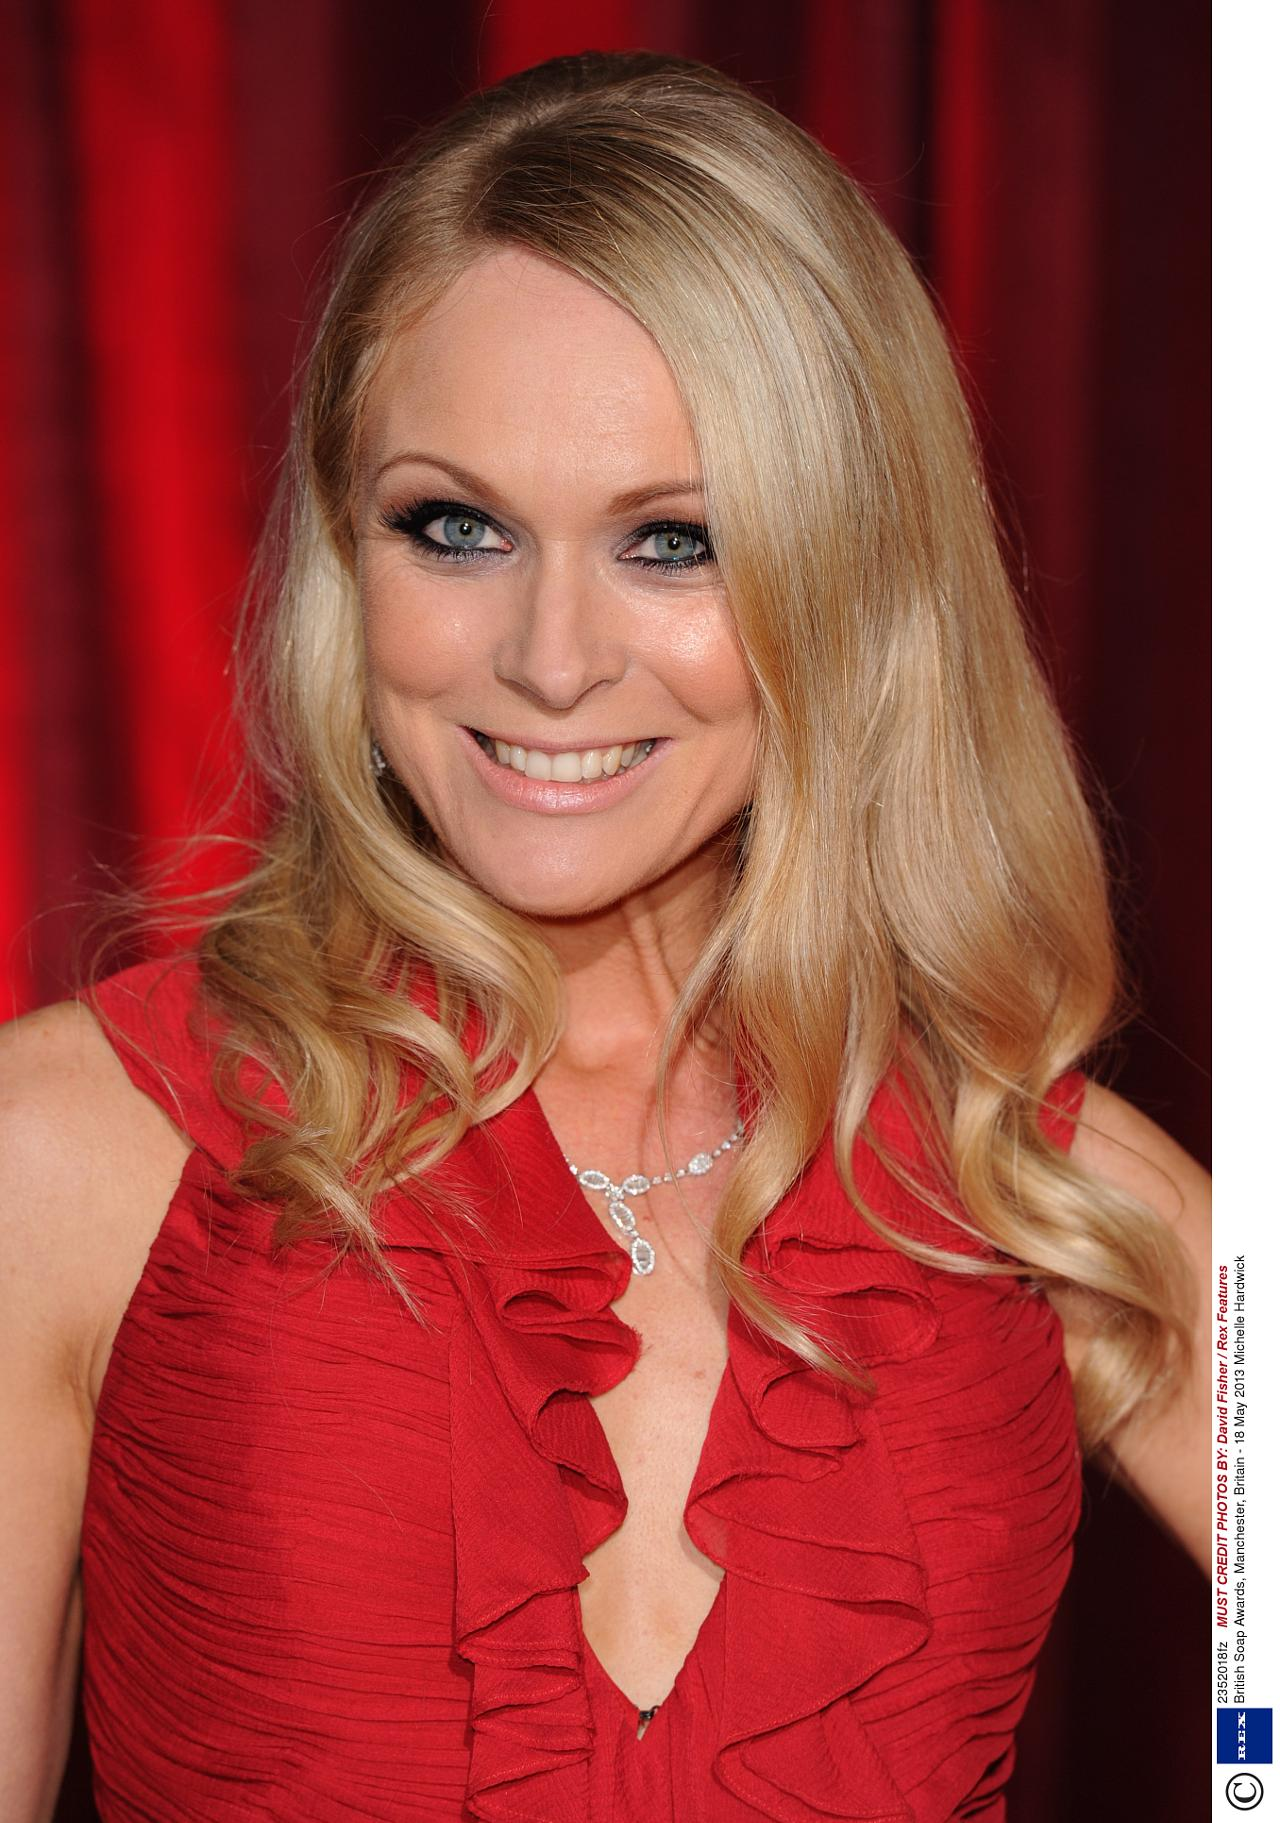 Celebrity Michelle Hardwick nude photos 2019